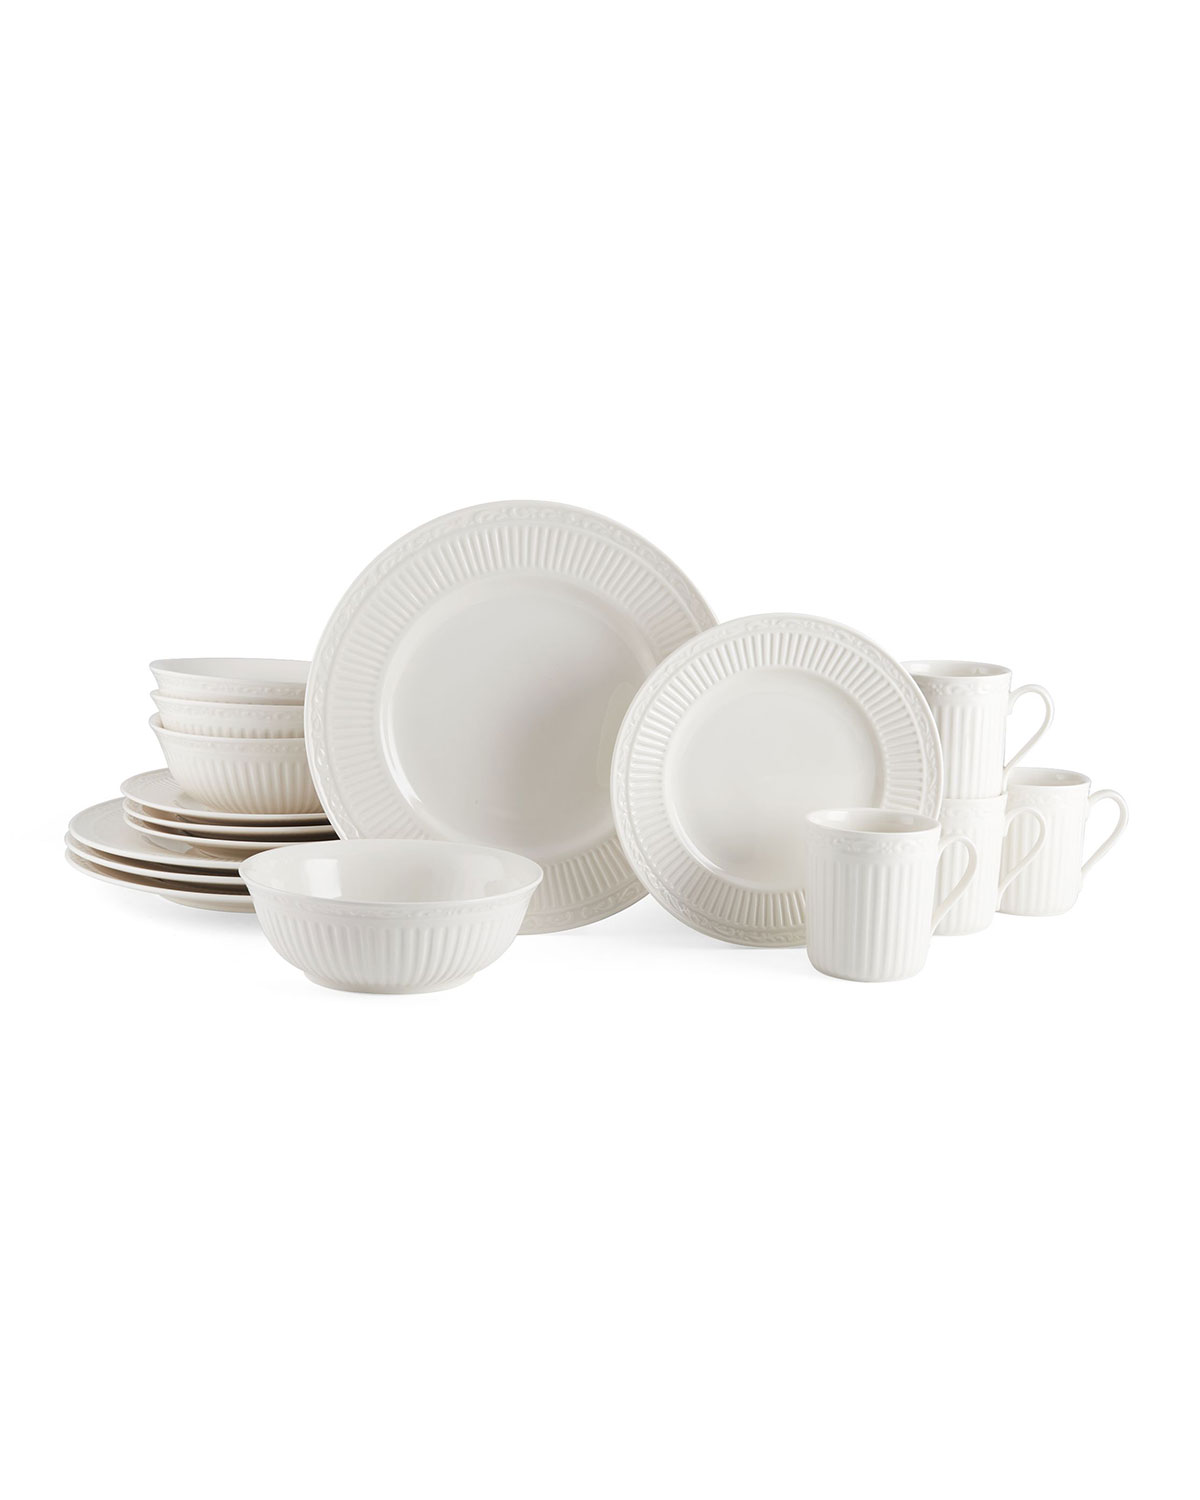 Mikasa 16-Piece Italian Countryside Dinnerware Set